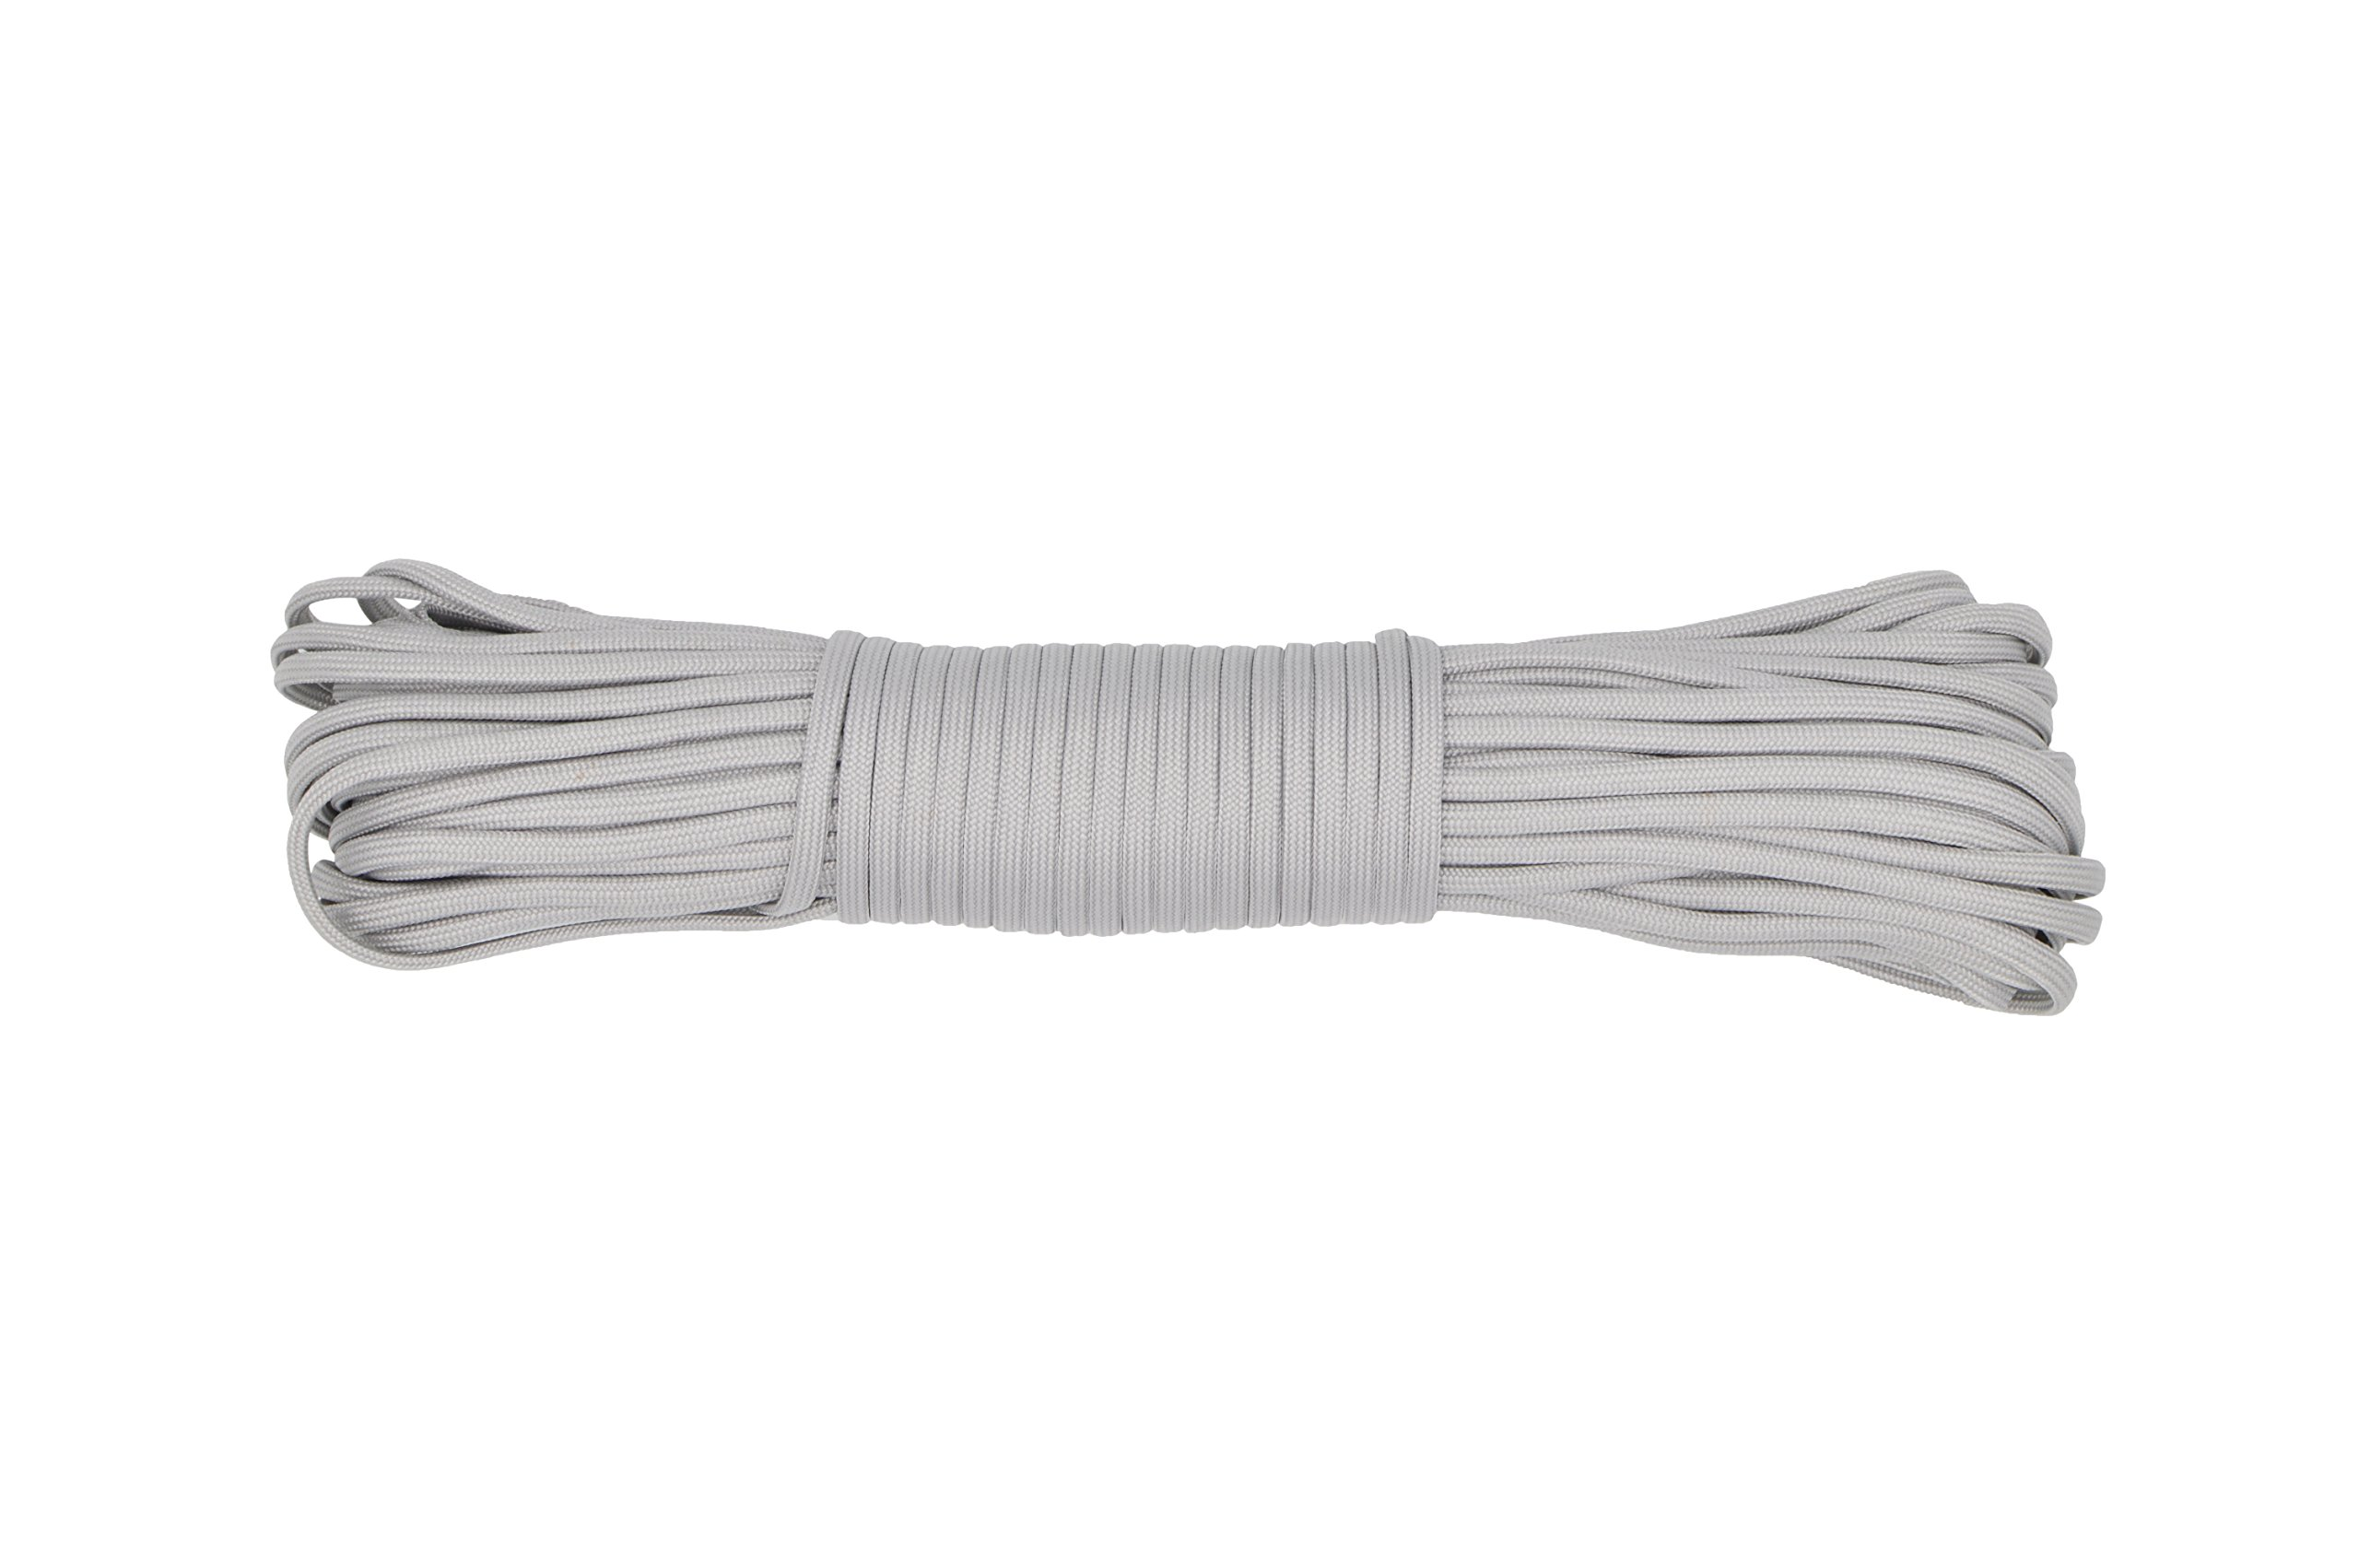 Paracord Rope 550 Type III Paracord - Parachute Cord - 550lb Tensile Strength - 100% Nylon - Made In The USA (Silver Grey, 100 Feet)